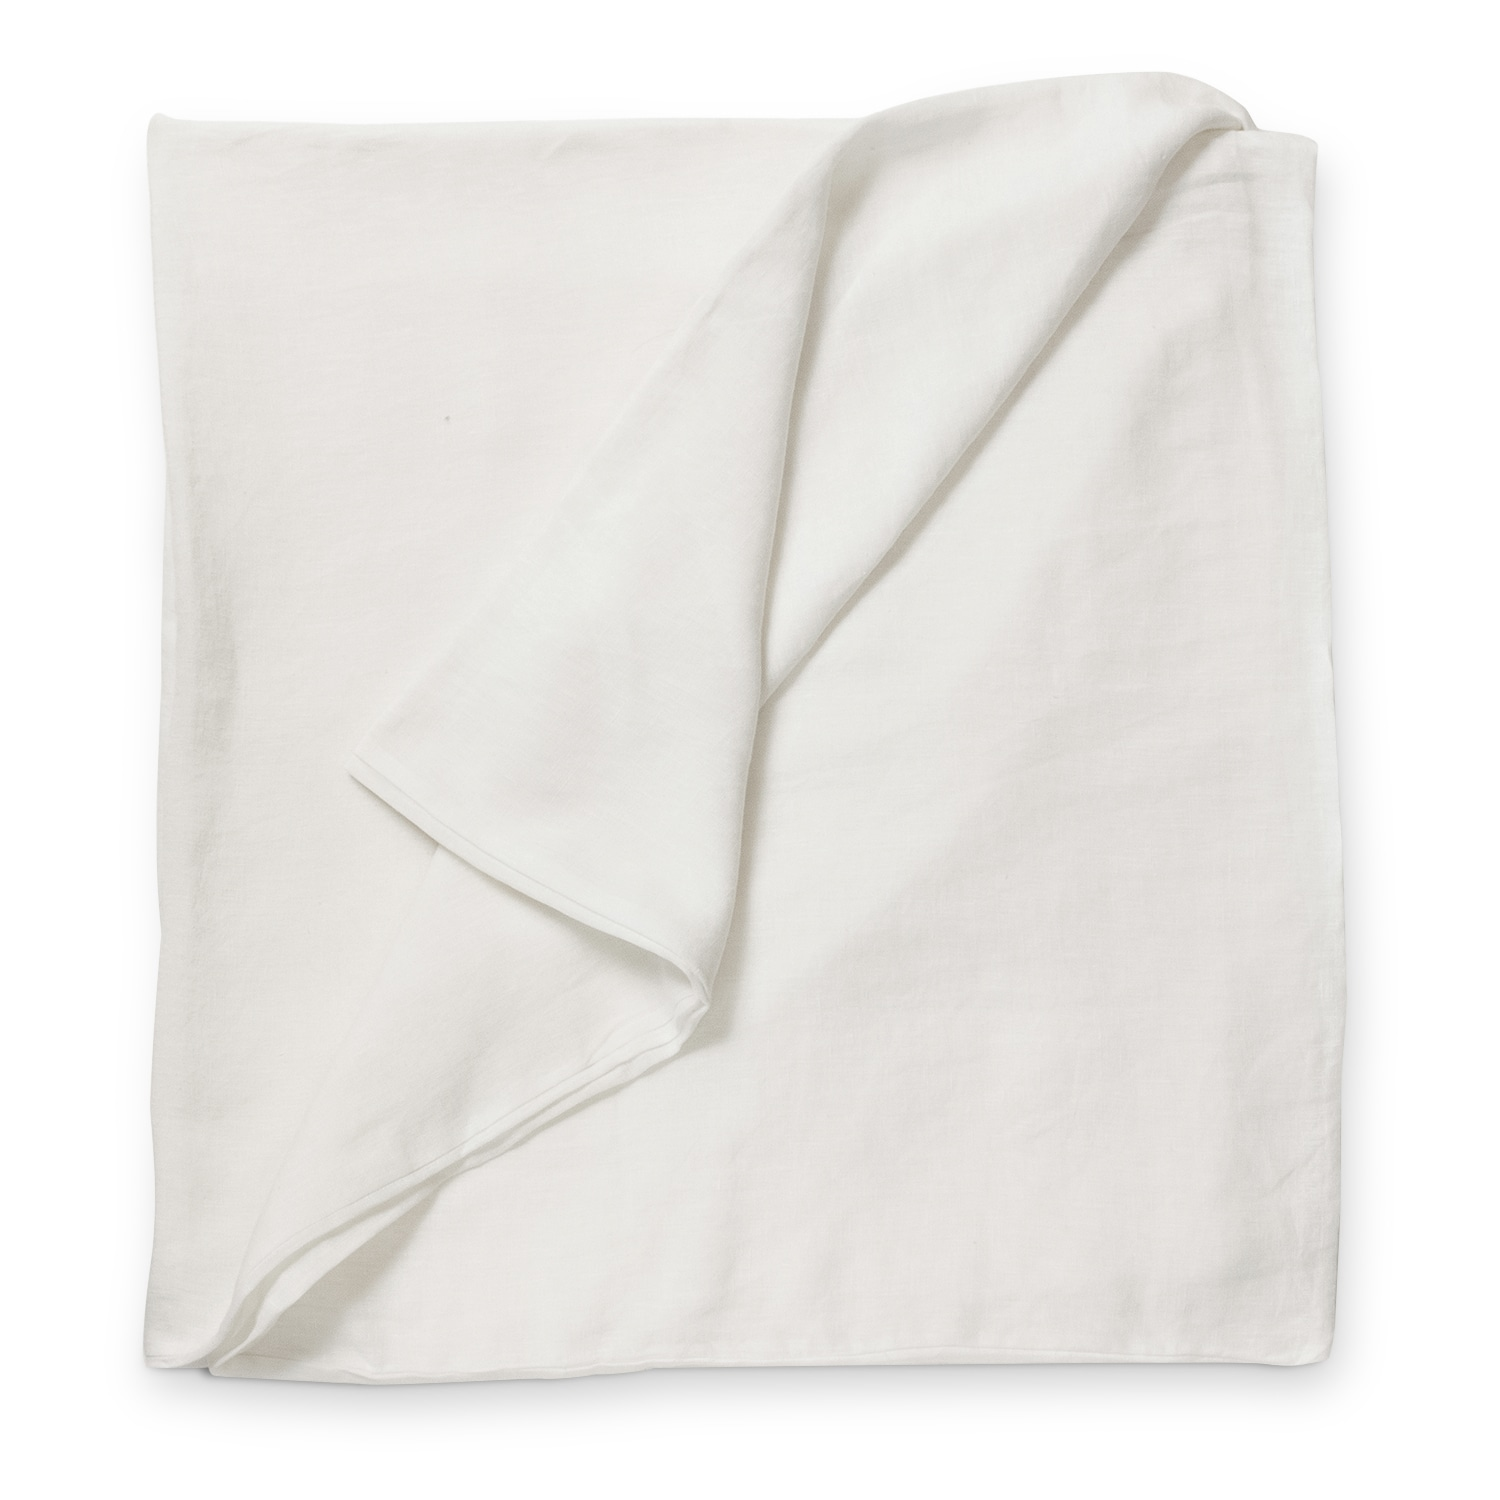 Accent and Occasional Furniture - Damara Queen Duvet Cover - White